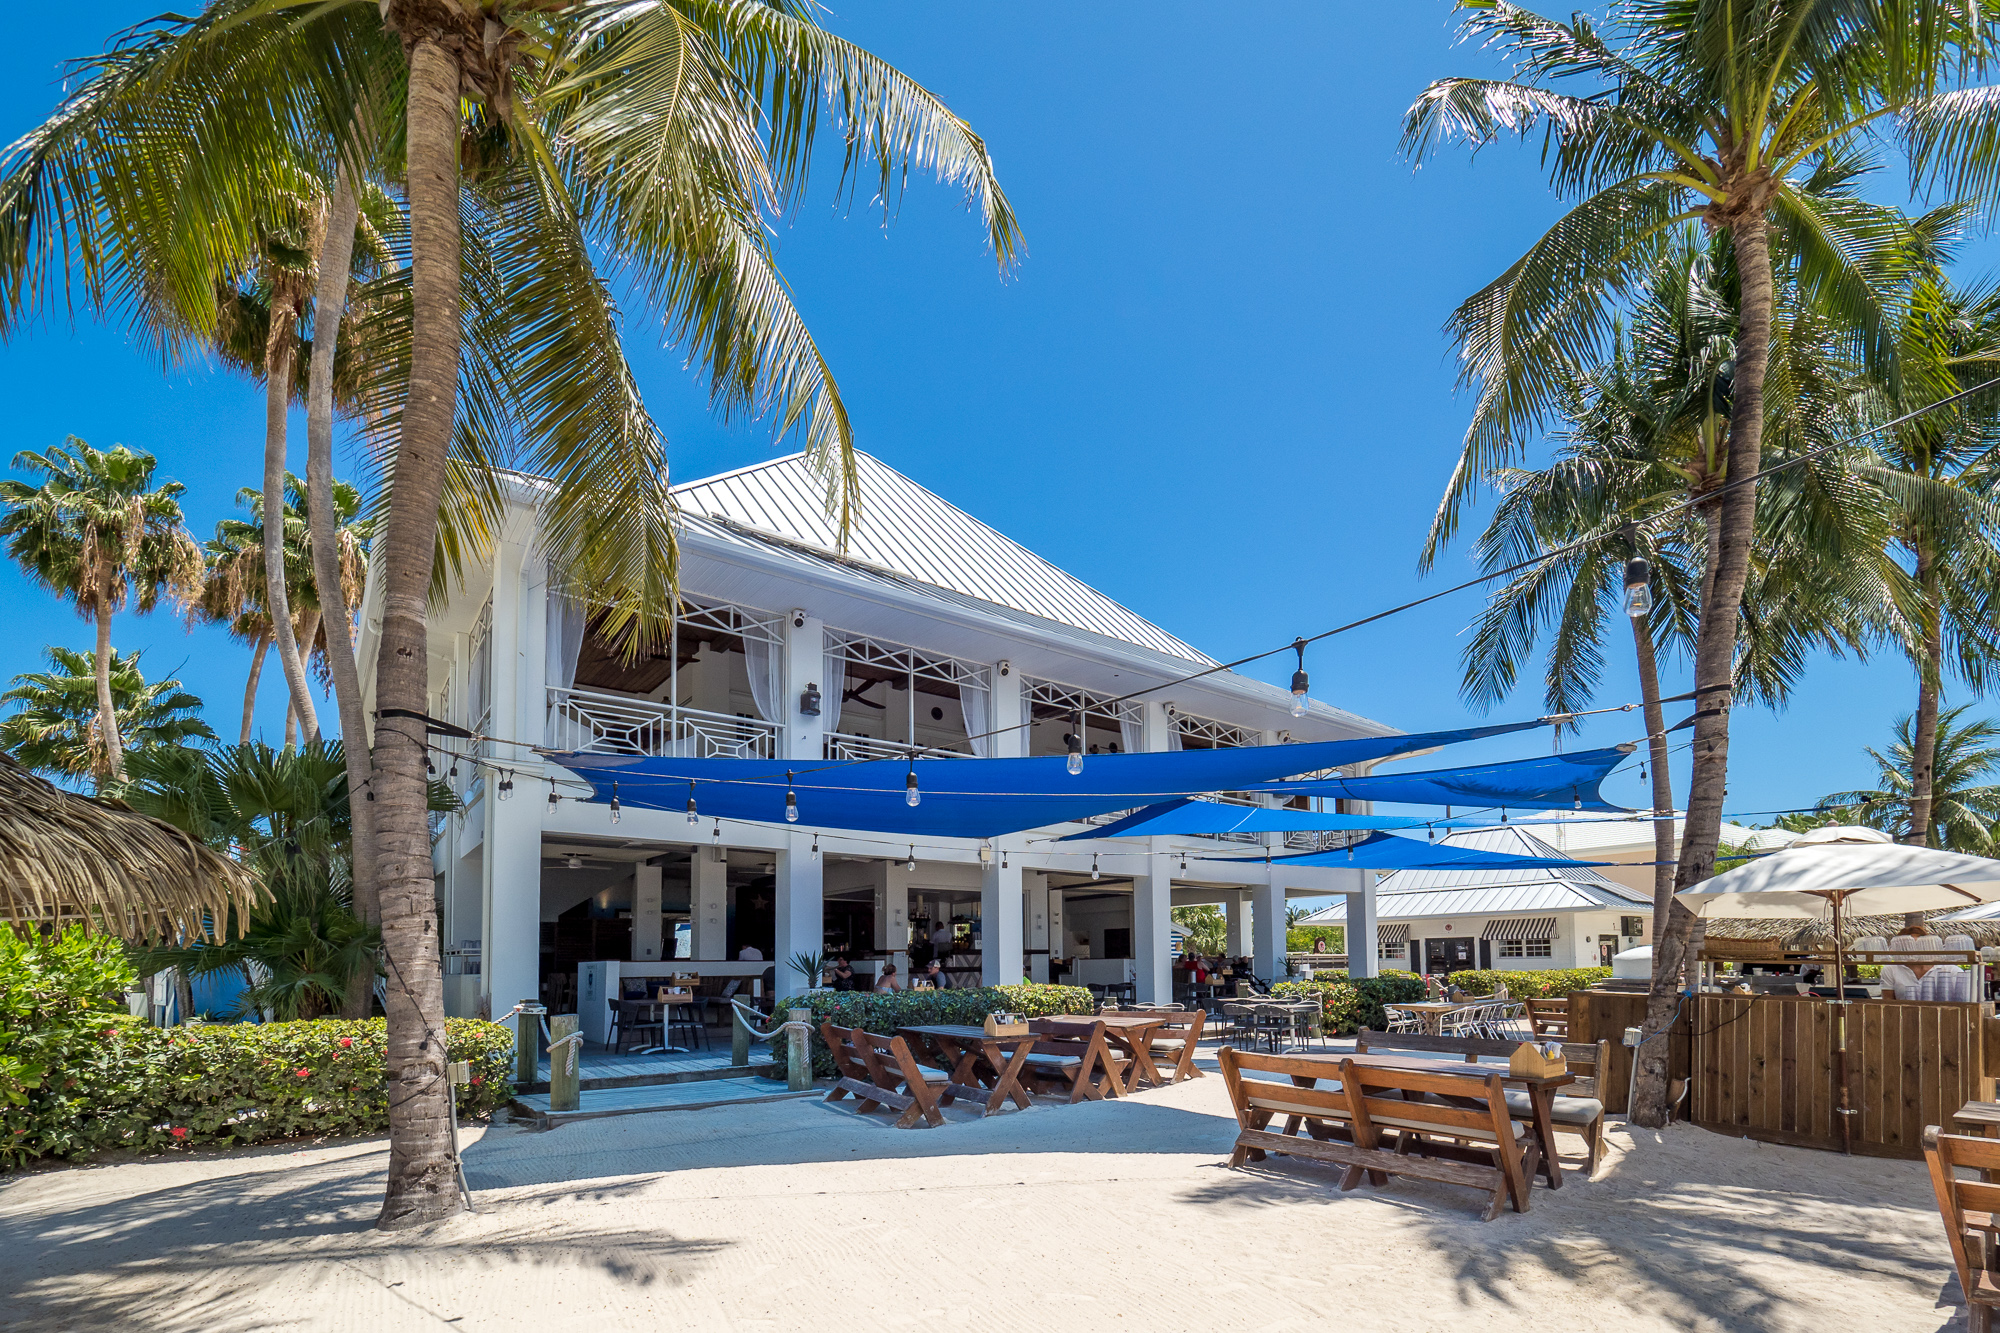 Kaibo Beach Grill & Bar